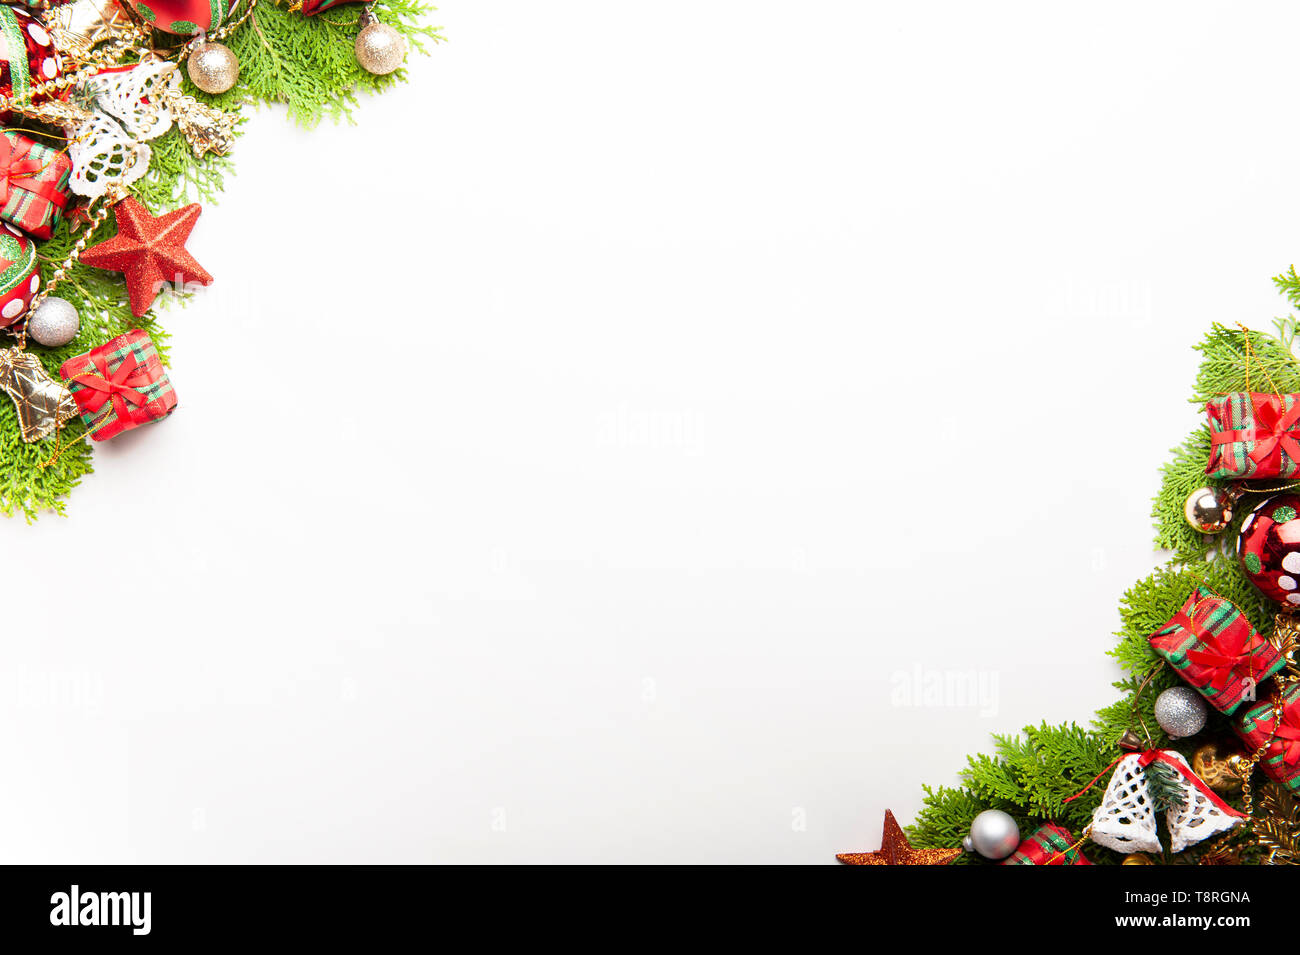 Christmas Top View.Top View Of Christmas Background Template With Decorations